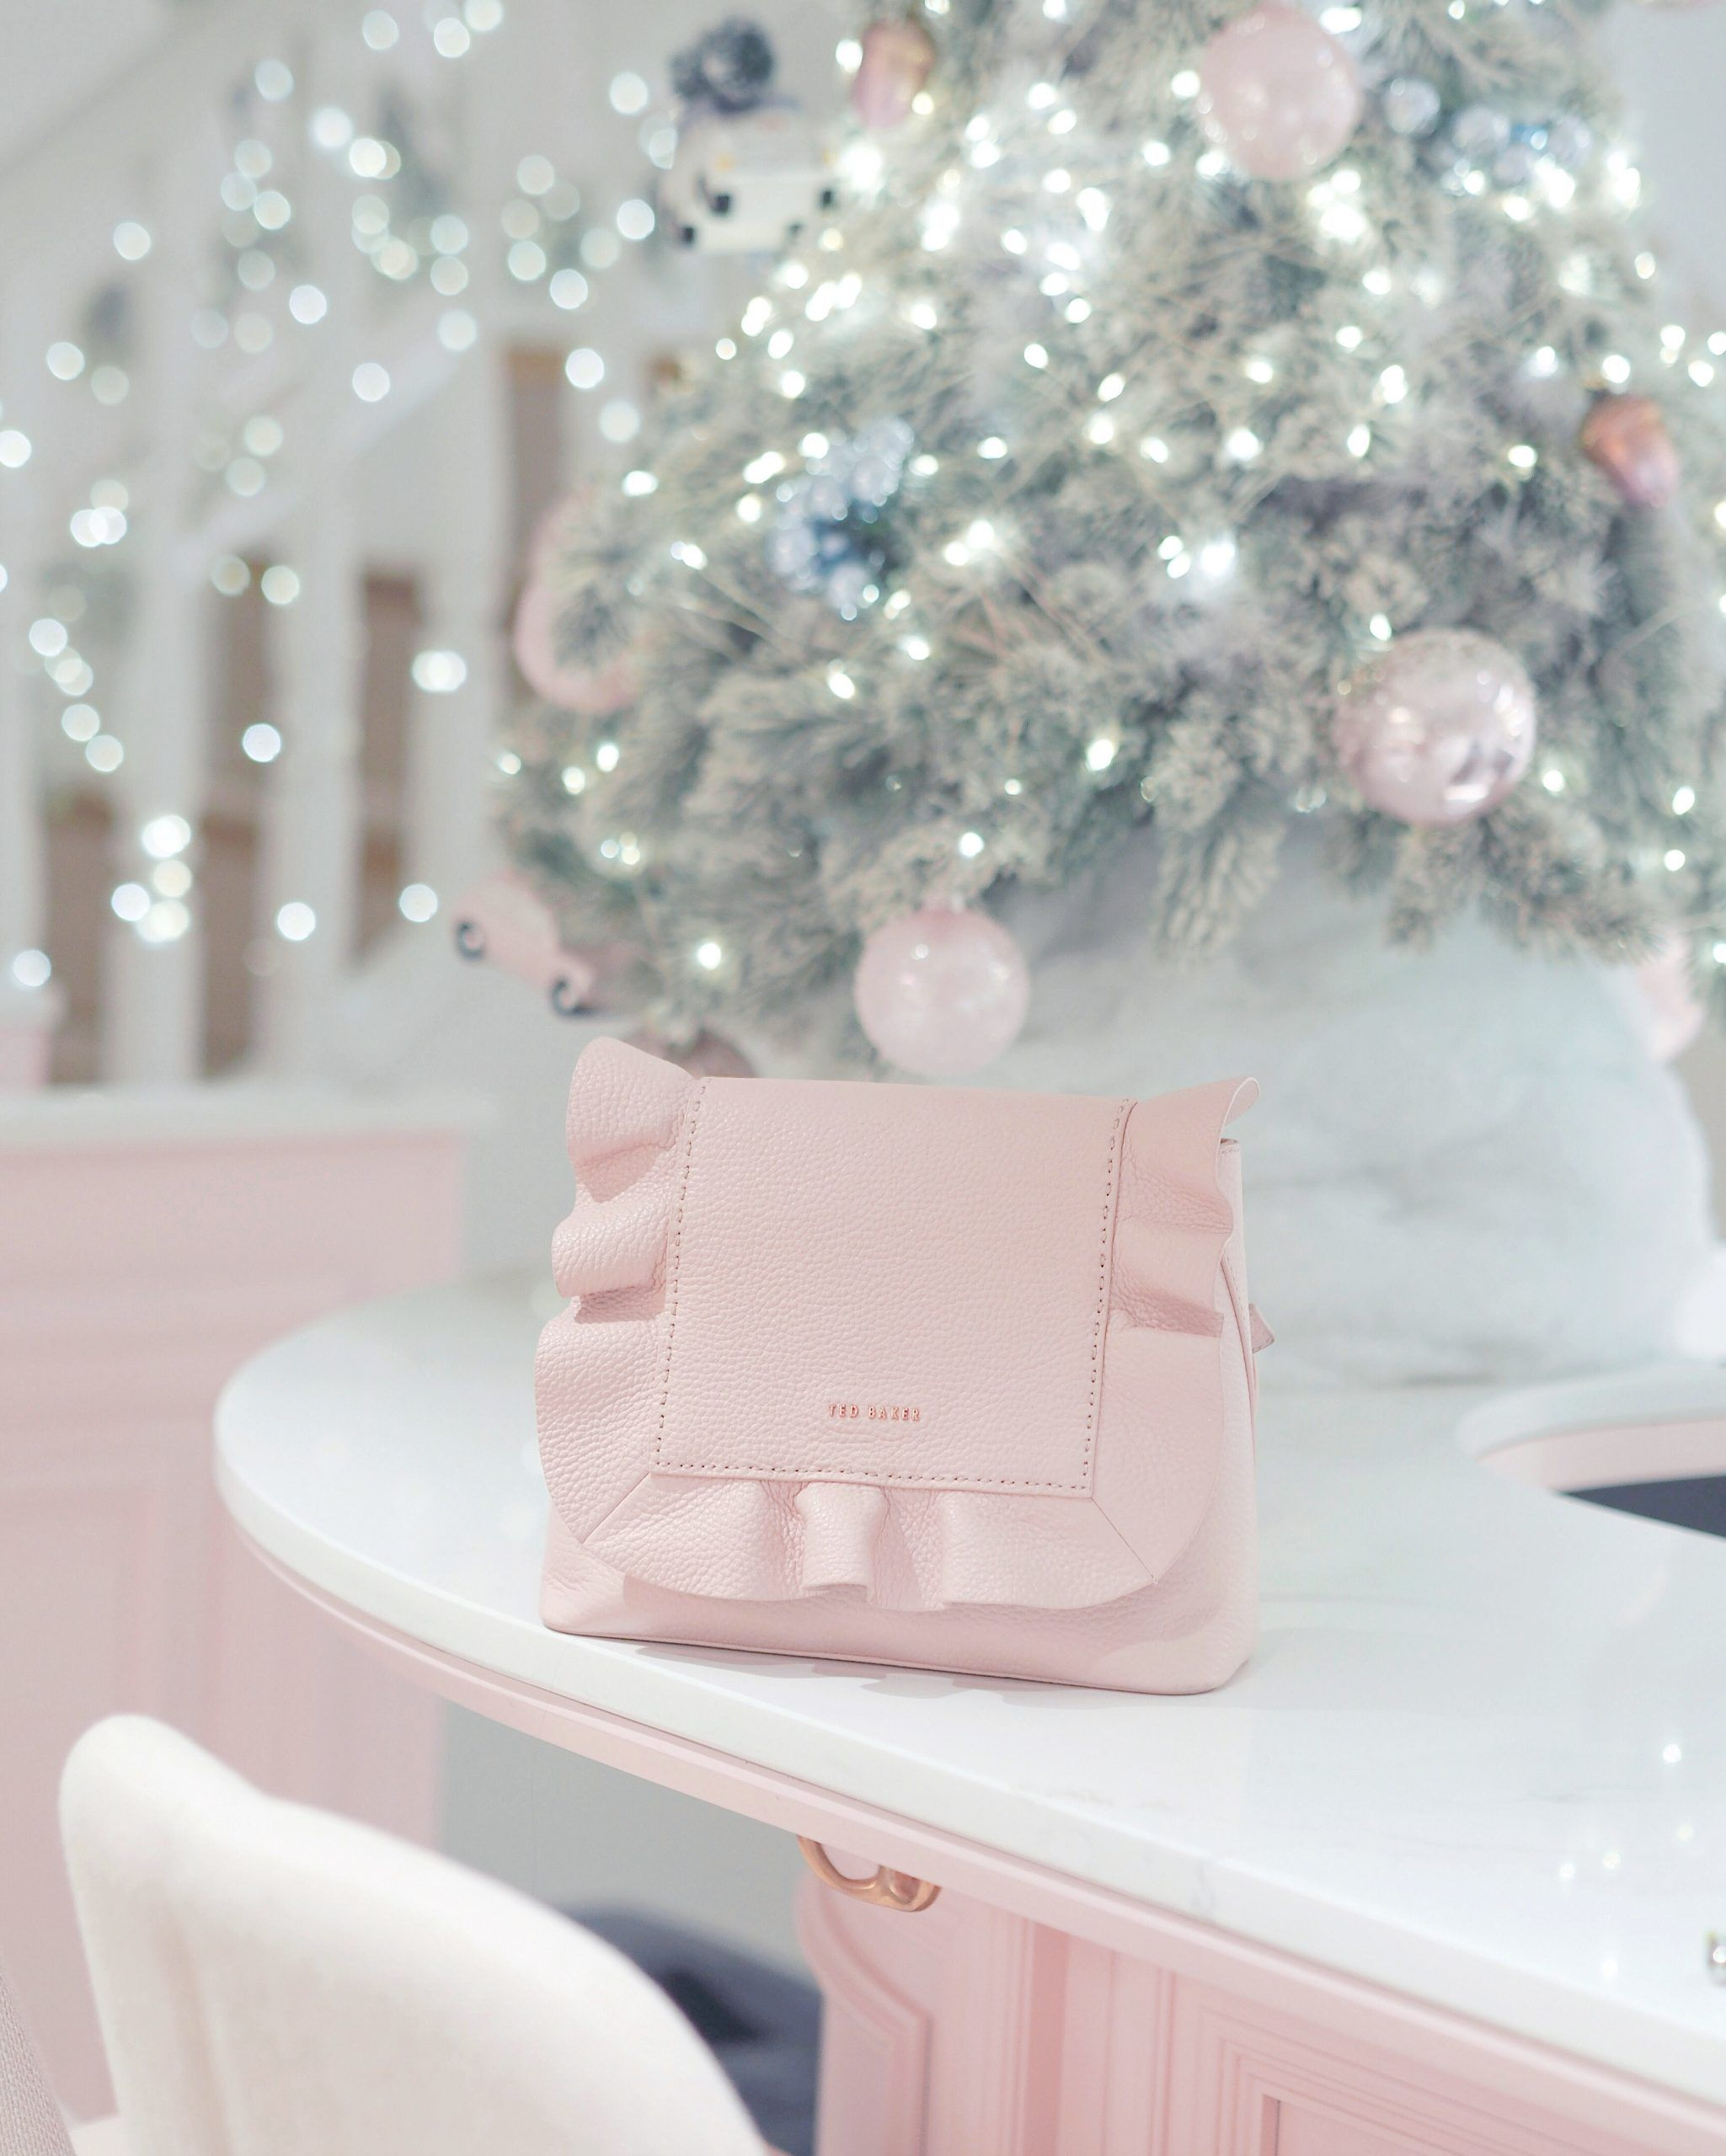 Pin by Pink Rose♡ on Z Gifts in 2020 Pink christmas